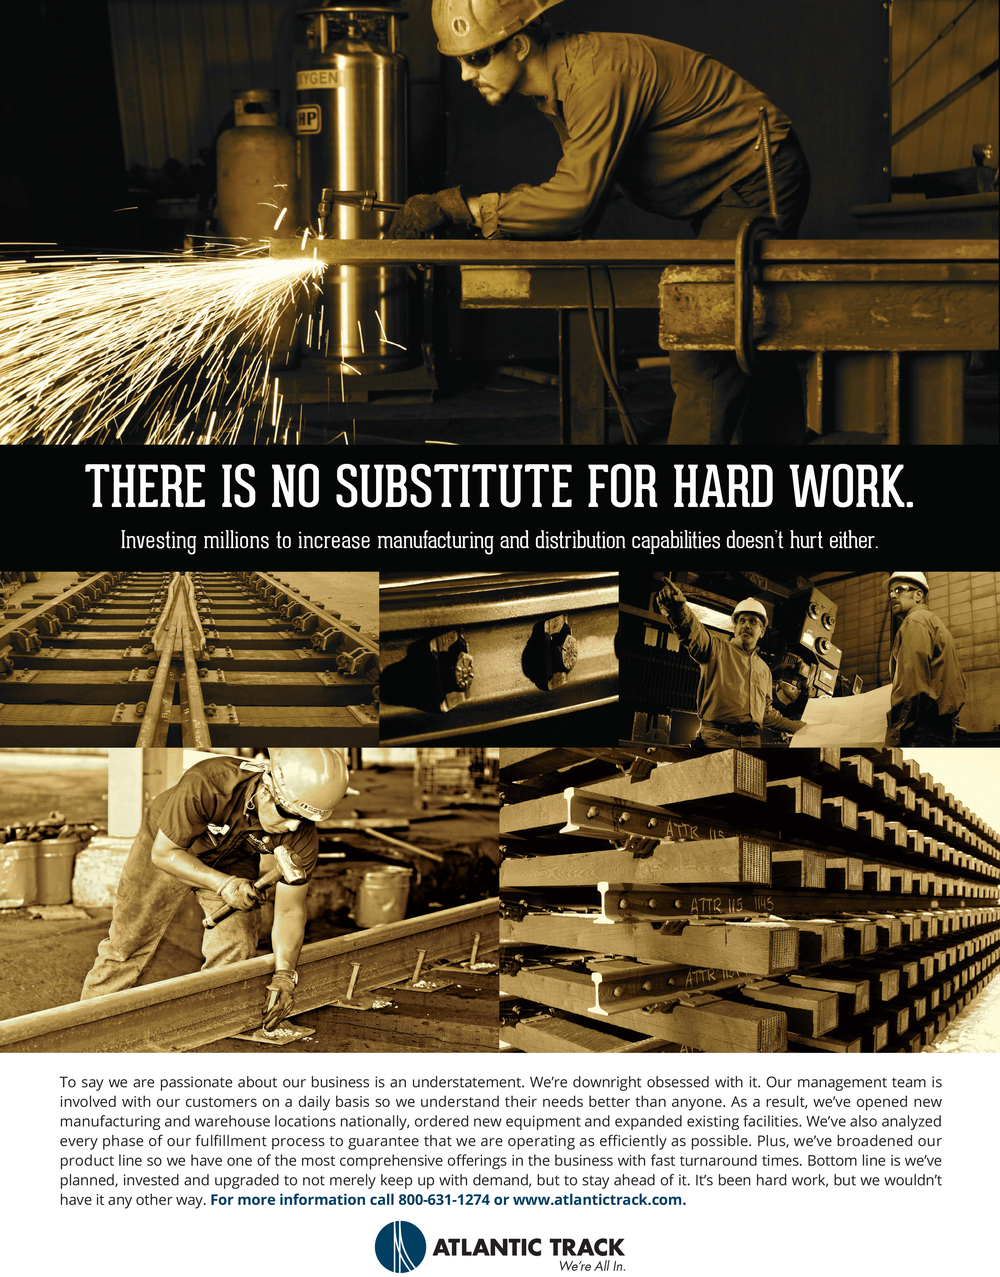 Atlantic-track-manufacturing-and-distribution-advertising.jpg